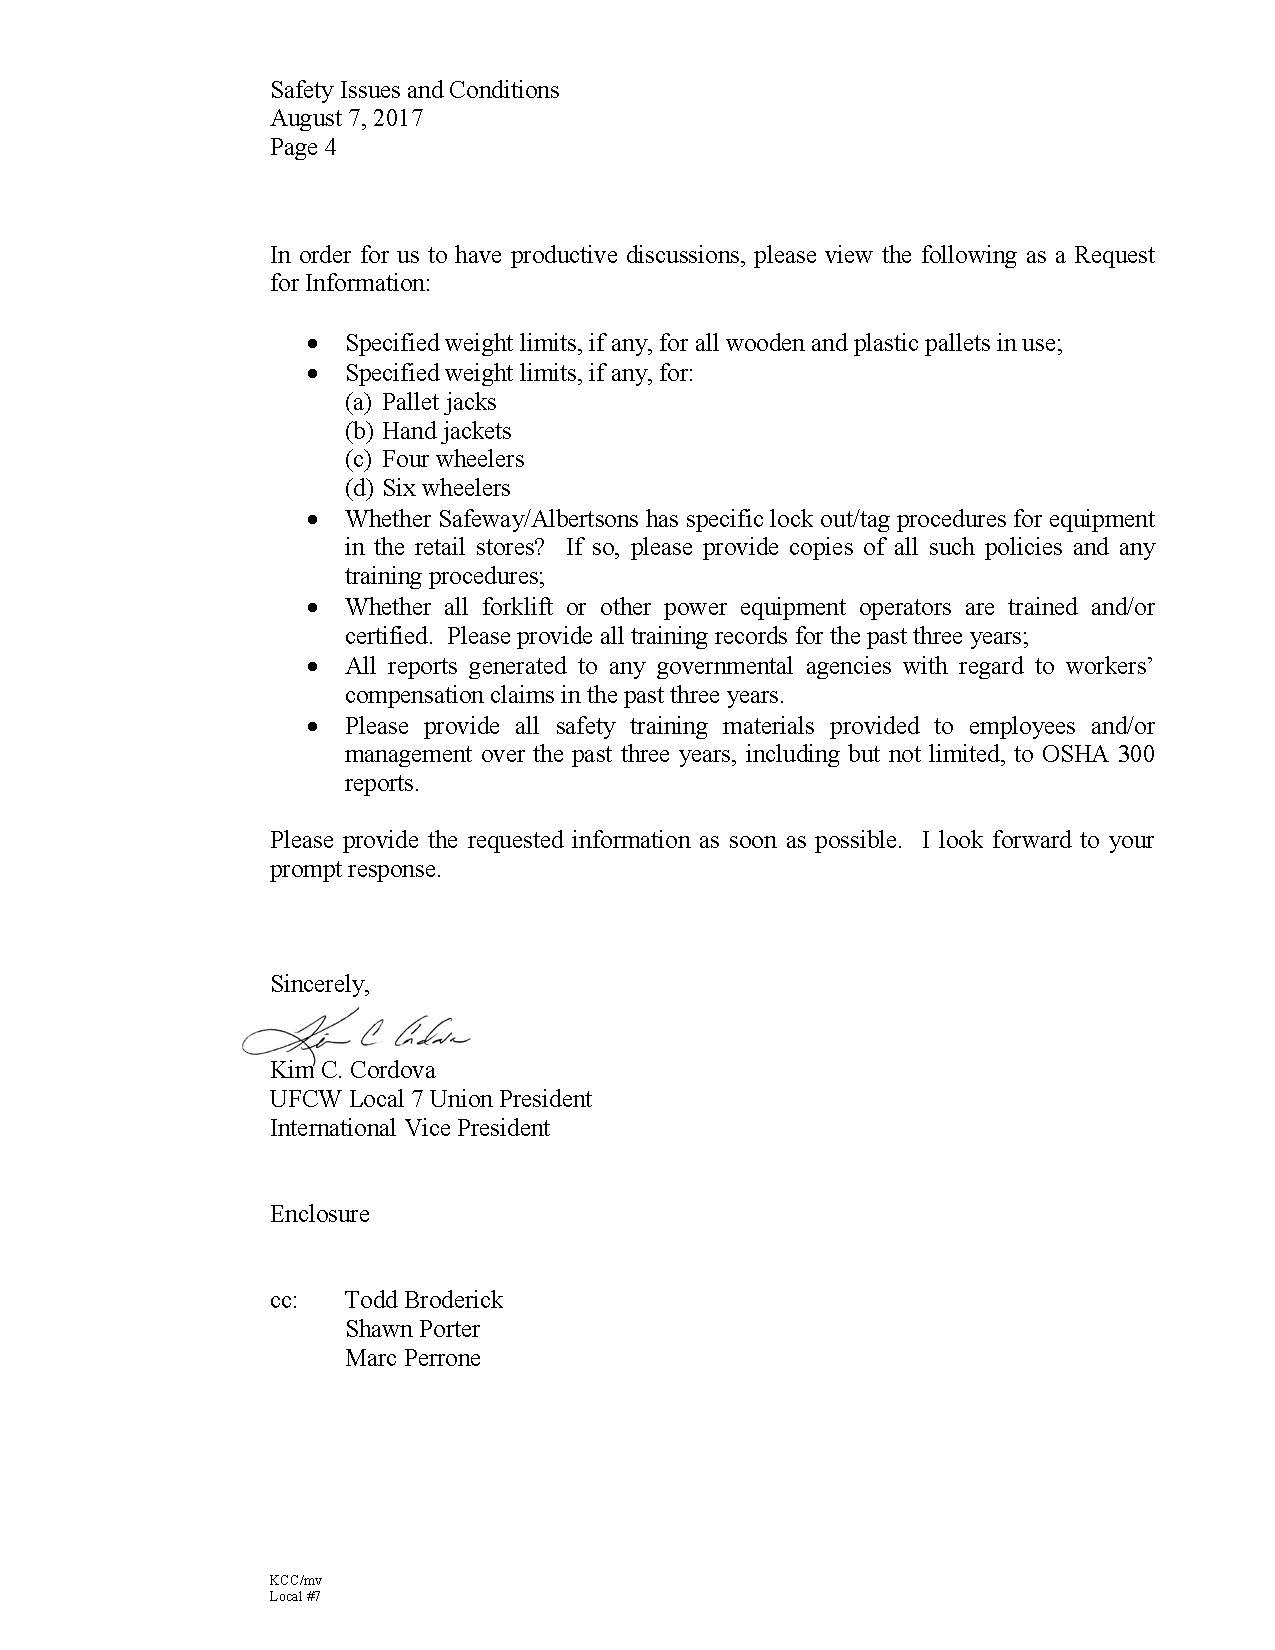 Safety Issues Letter to Safeway/Albertsons